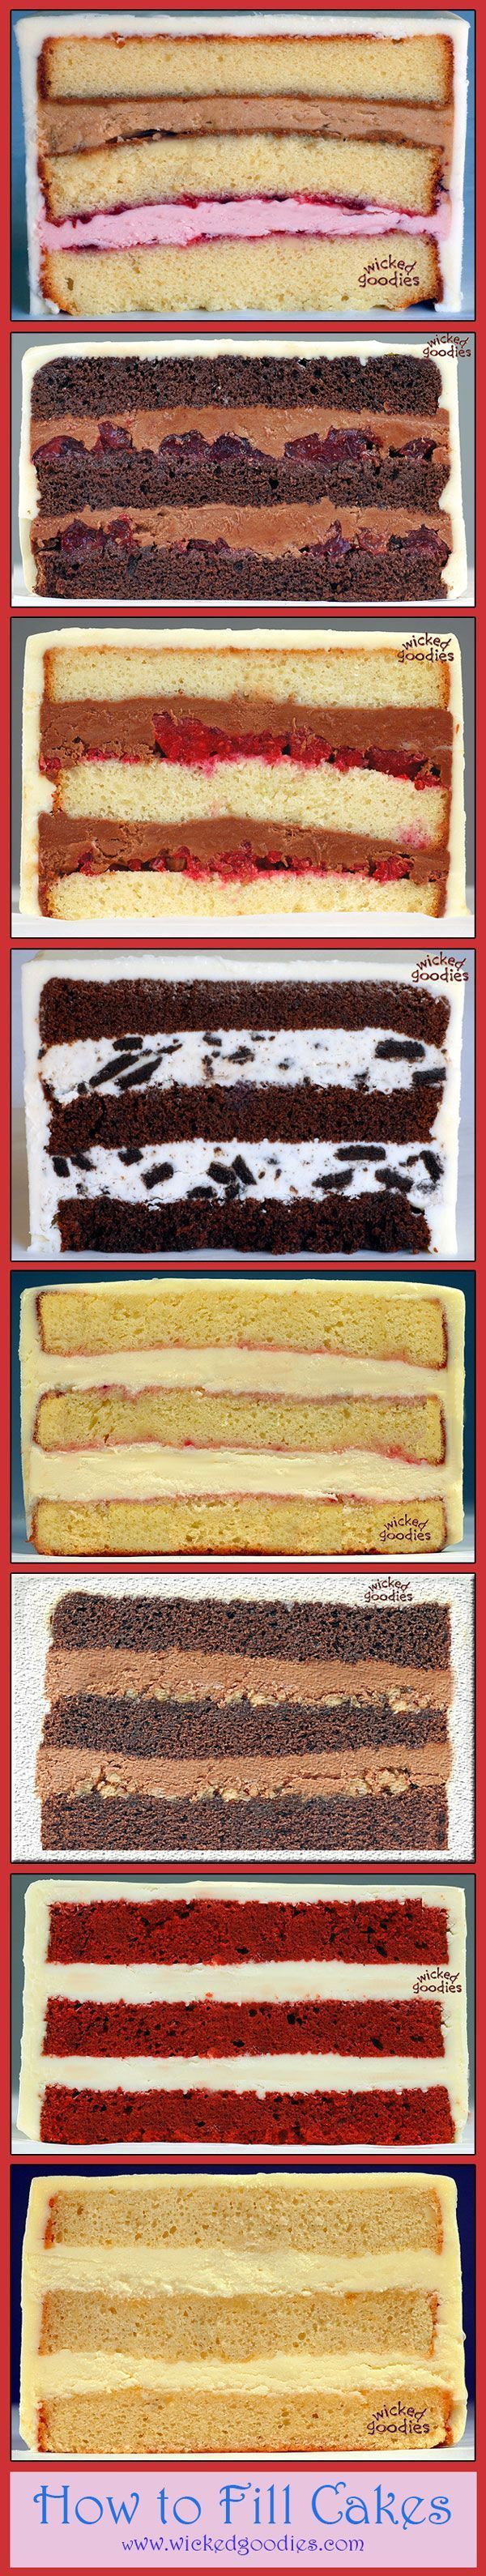 How to Fill Layer Cakes in the Baking Pan